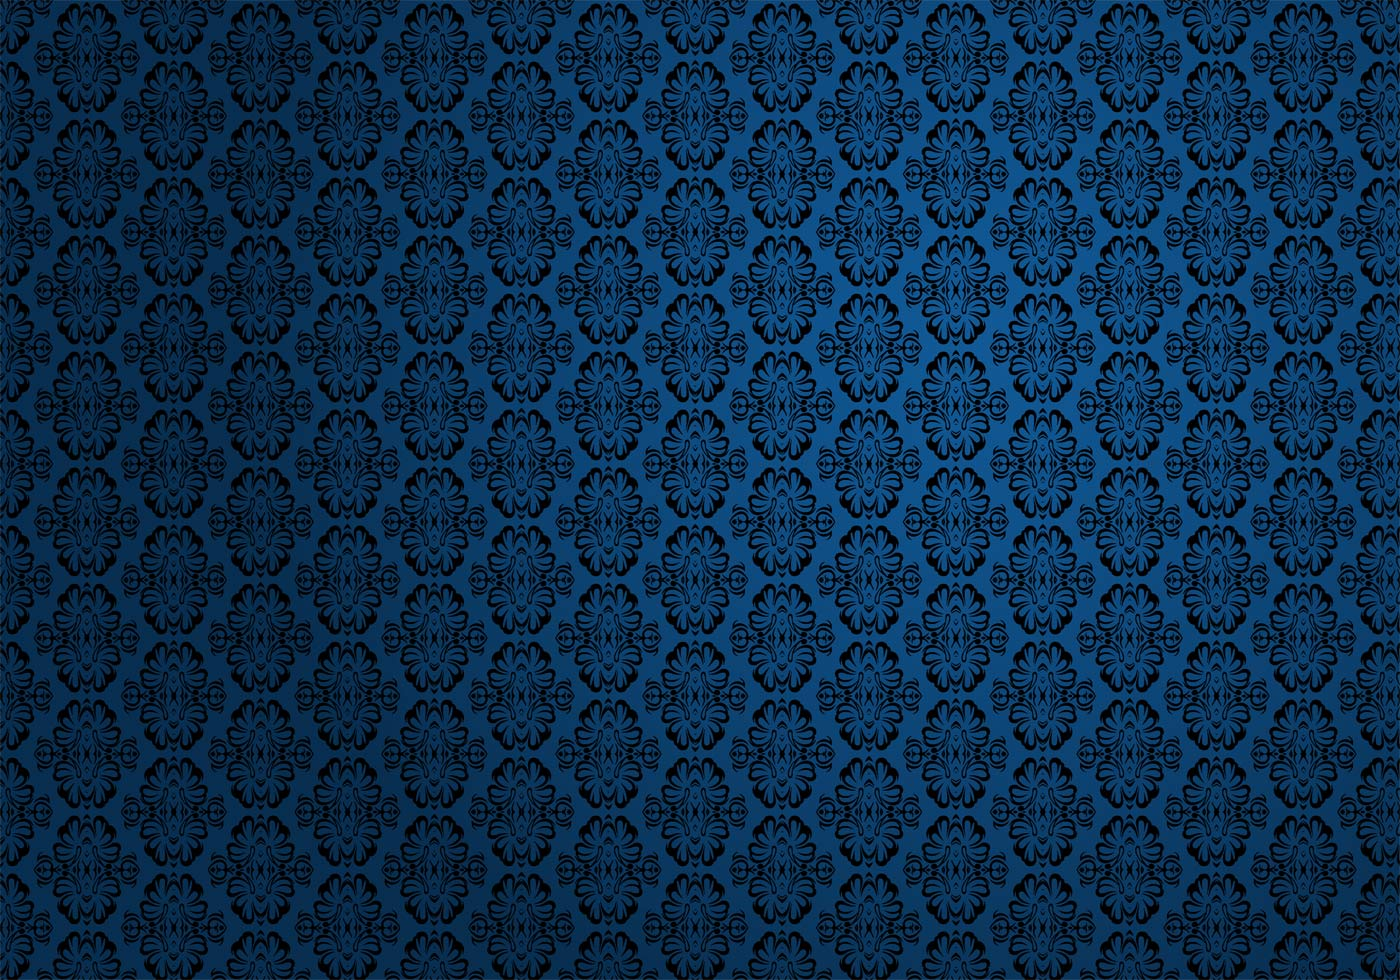 Black And Blue Floral Wallpaper Free Wallpaper Pattern Vector Download Free Vector Art